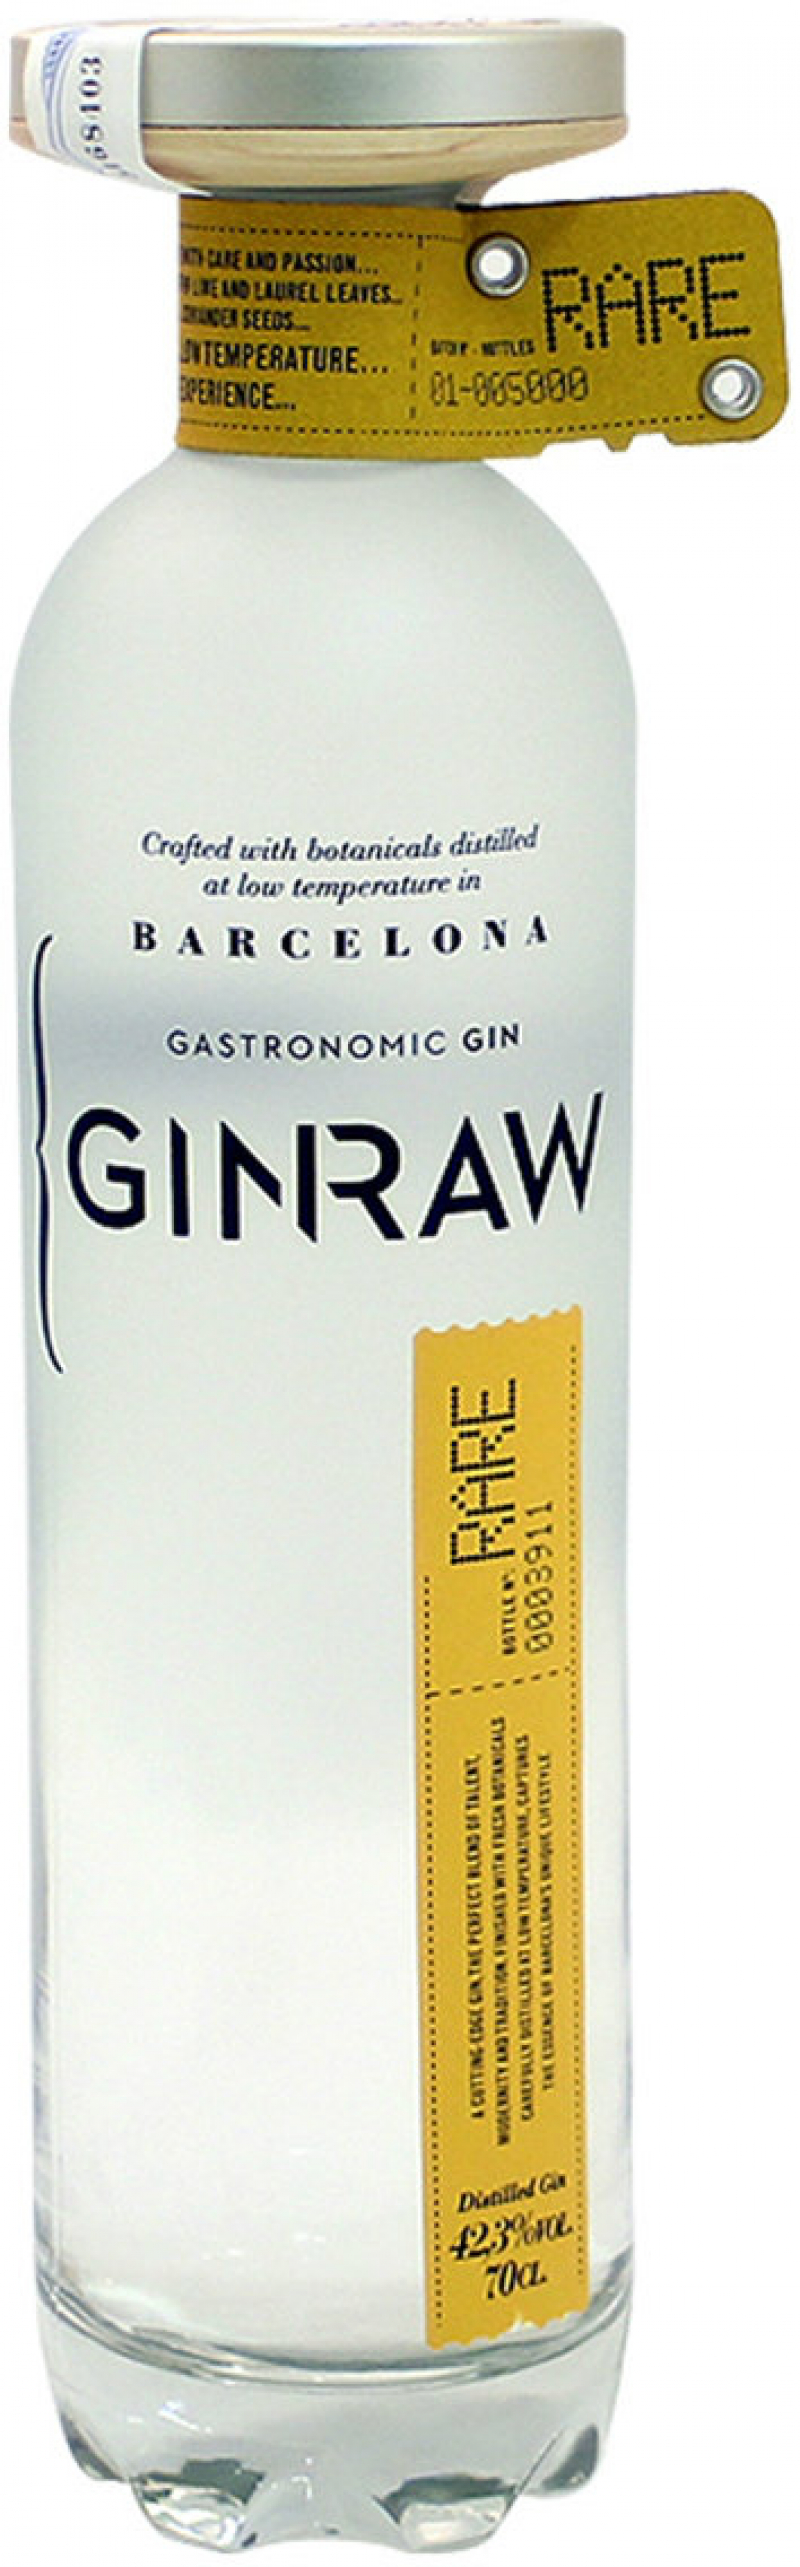 Image of Ginraw - Gastronomic Gin